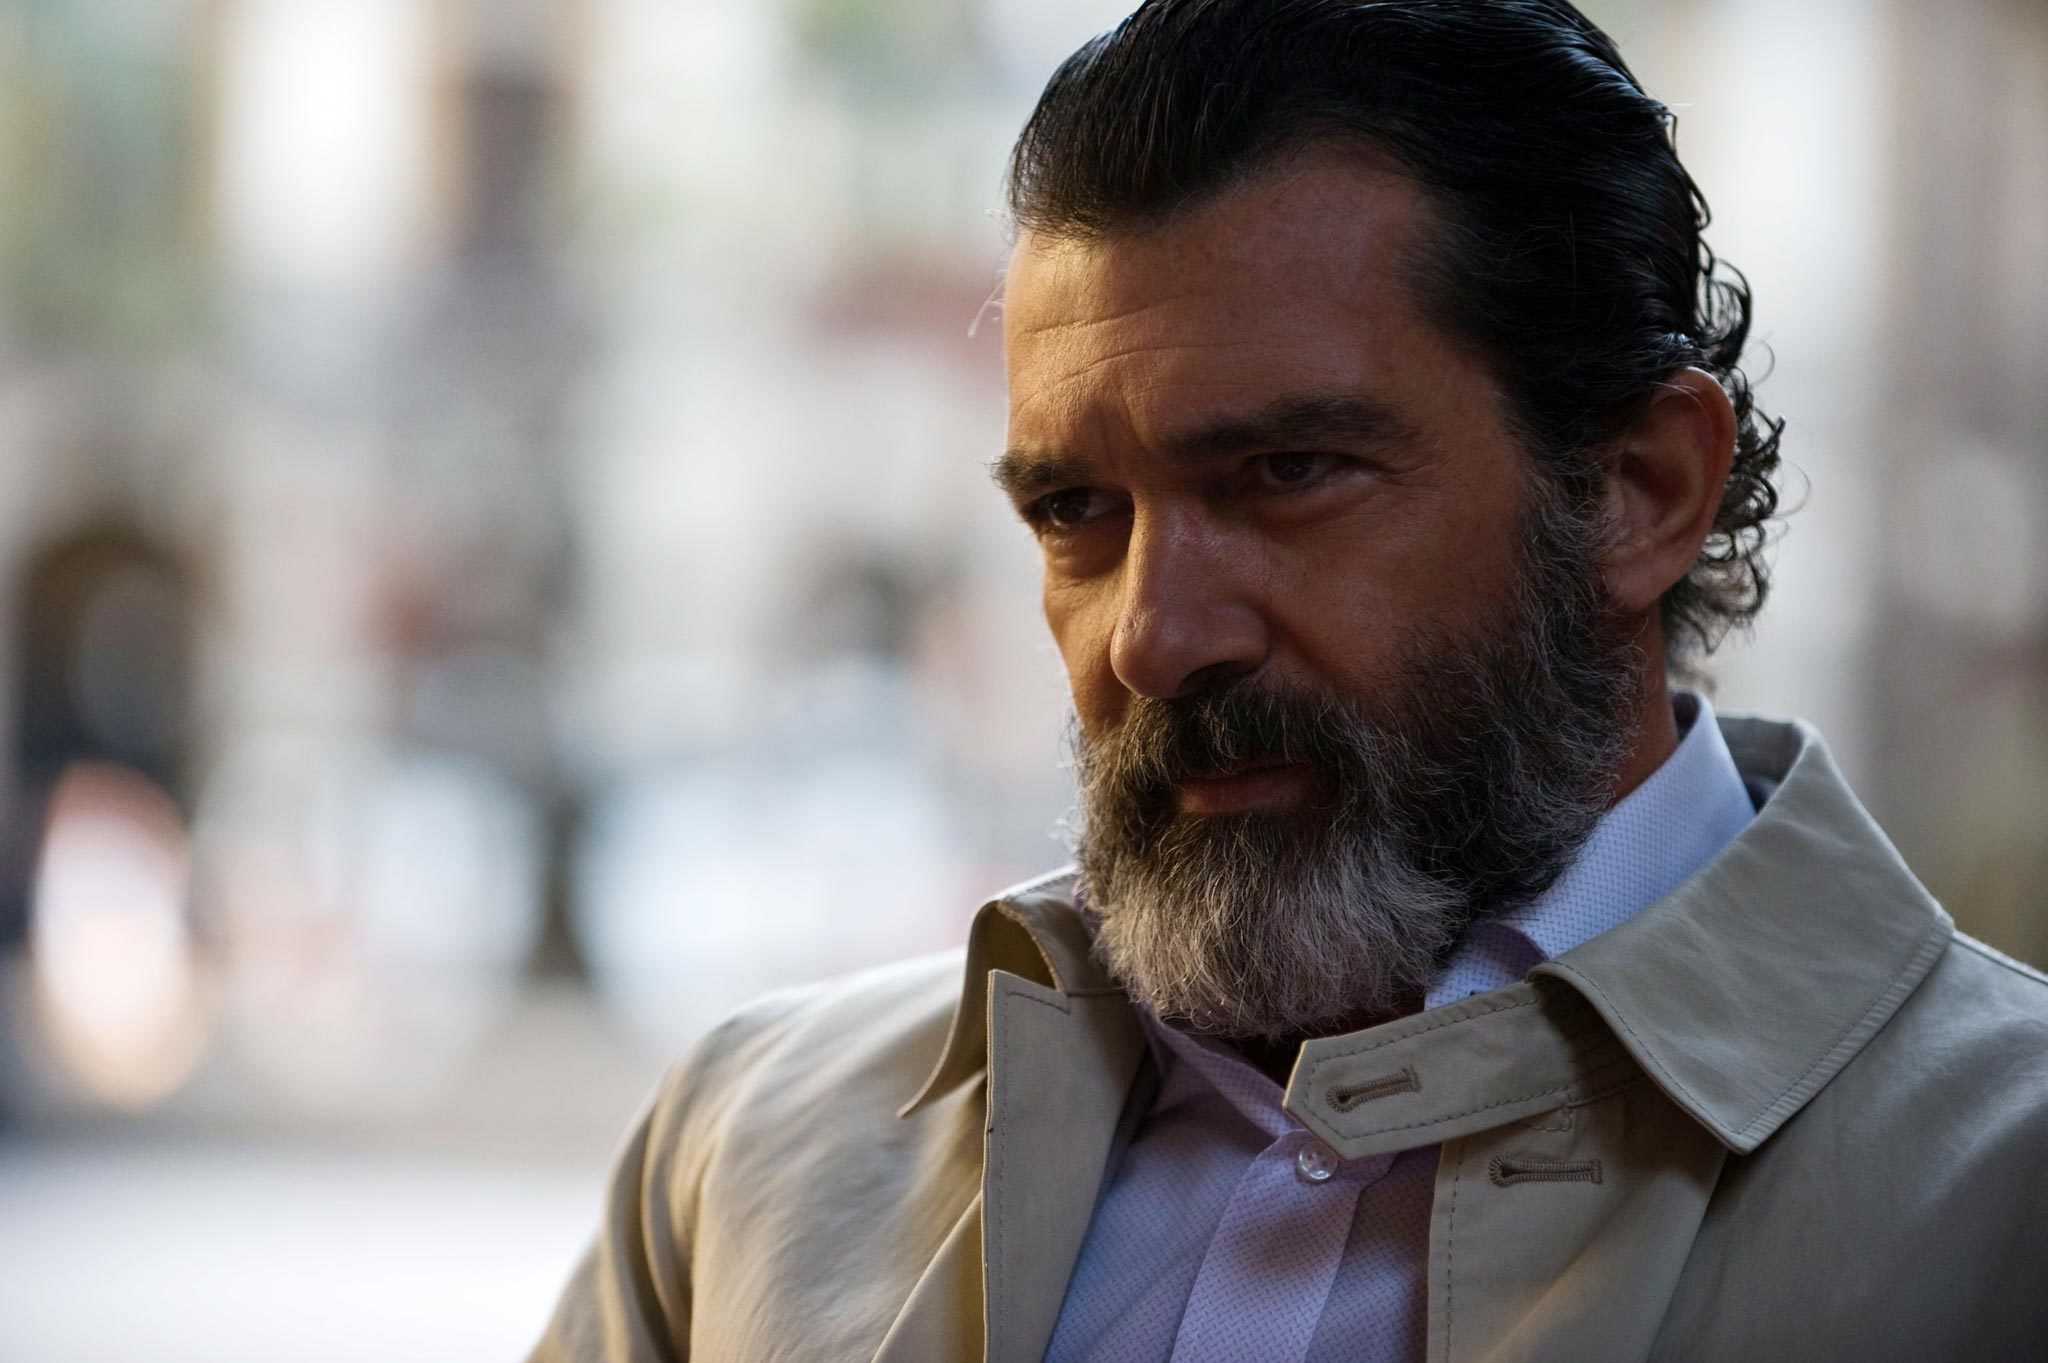 Antonio Banderas Wallpapers Images Photos Pictures Backgrounds